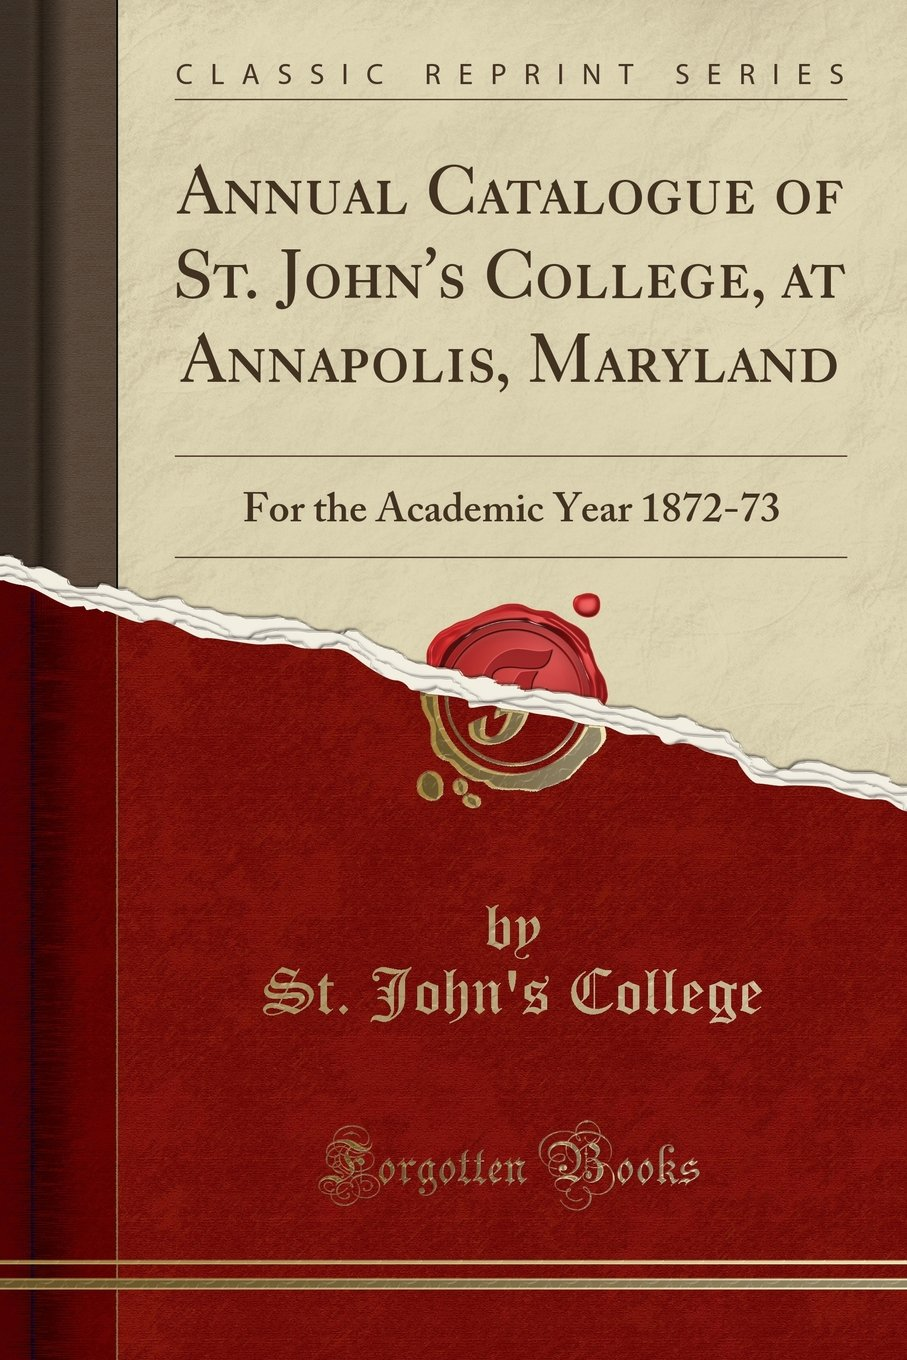 Annual Catalogue of St. John's College, at Annapolis, Maryland: For the Academic Year 1872-73 (Classic Reprint) pdf epub